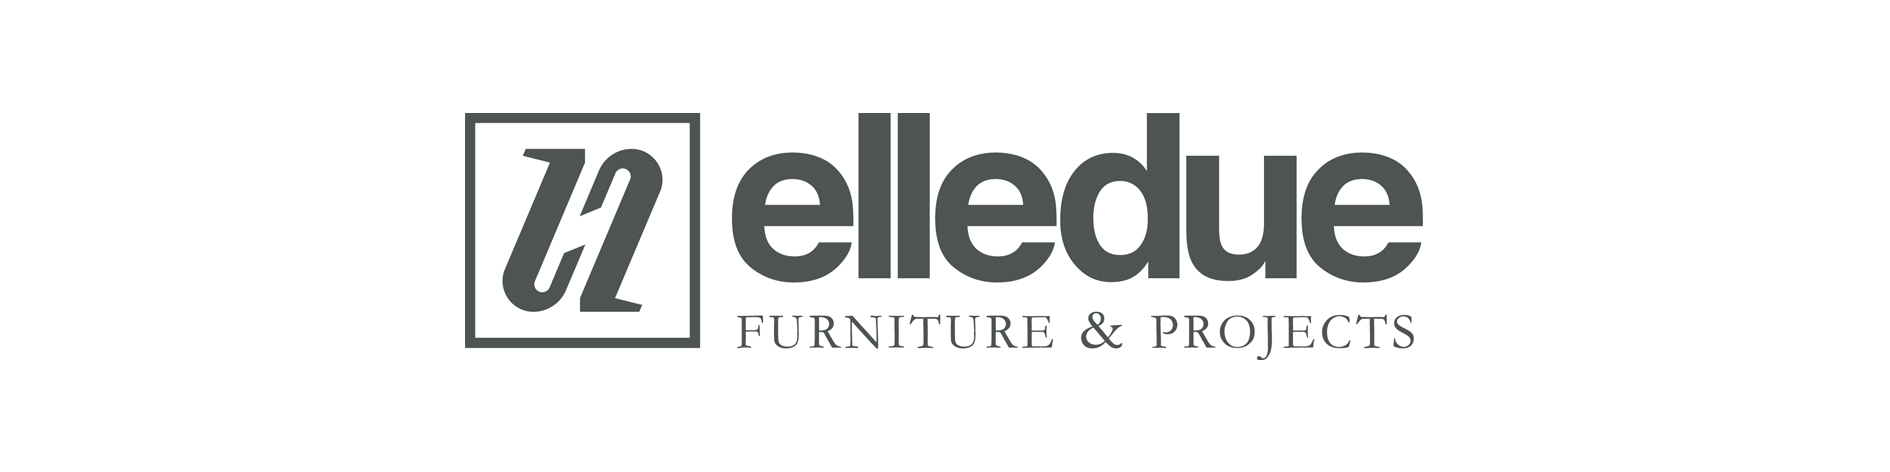 Elledue Furniture & Projects